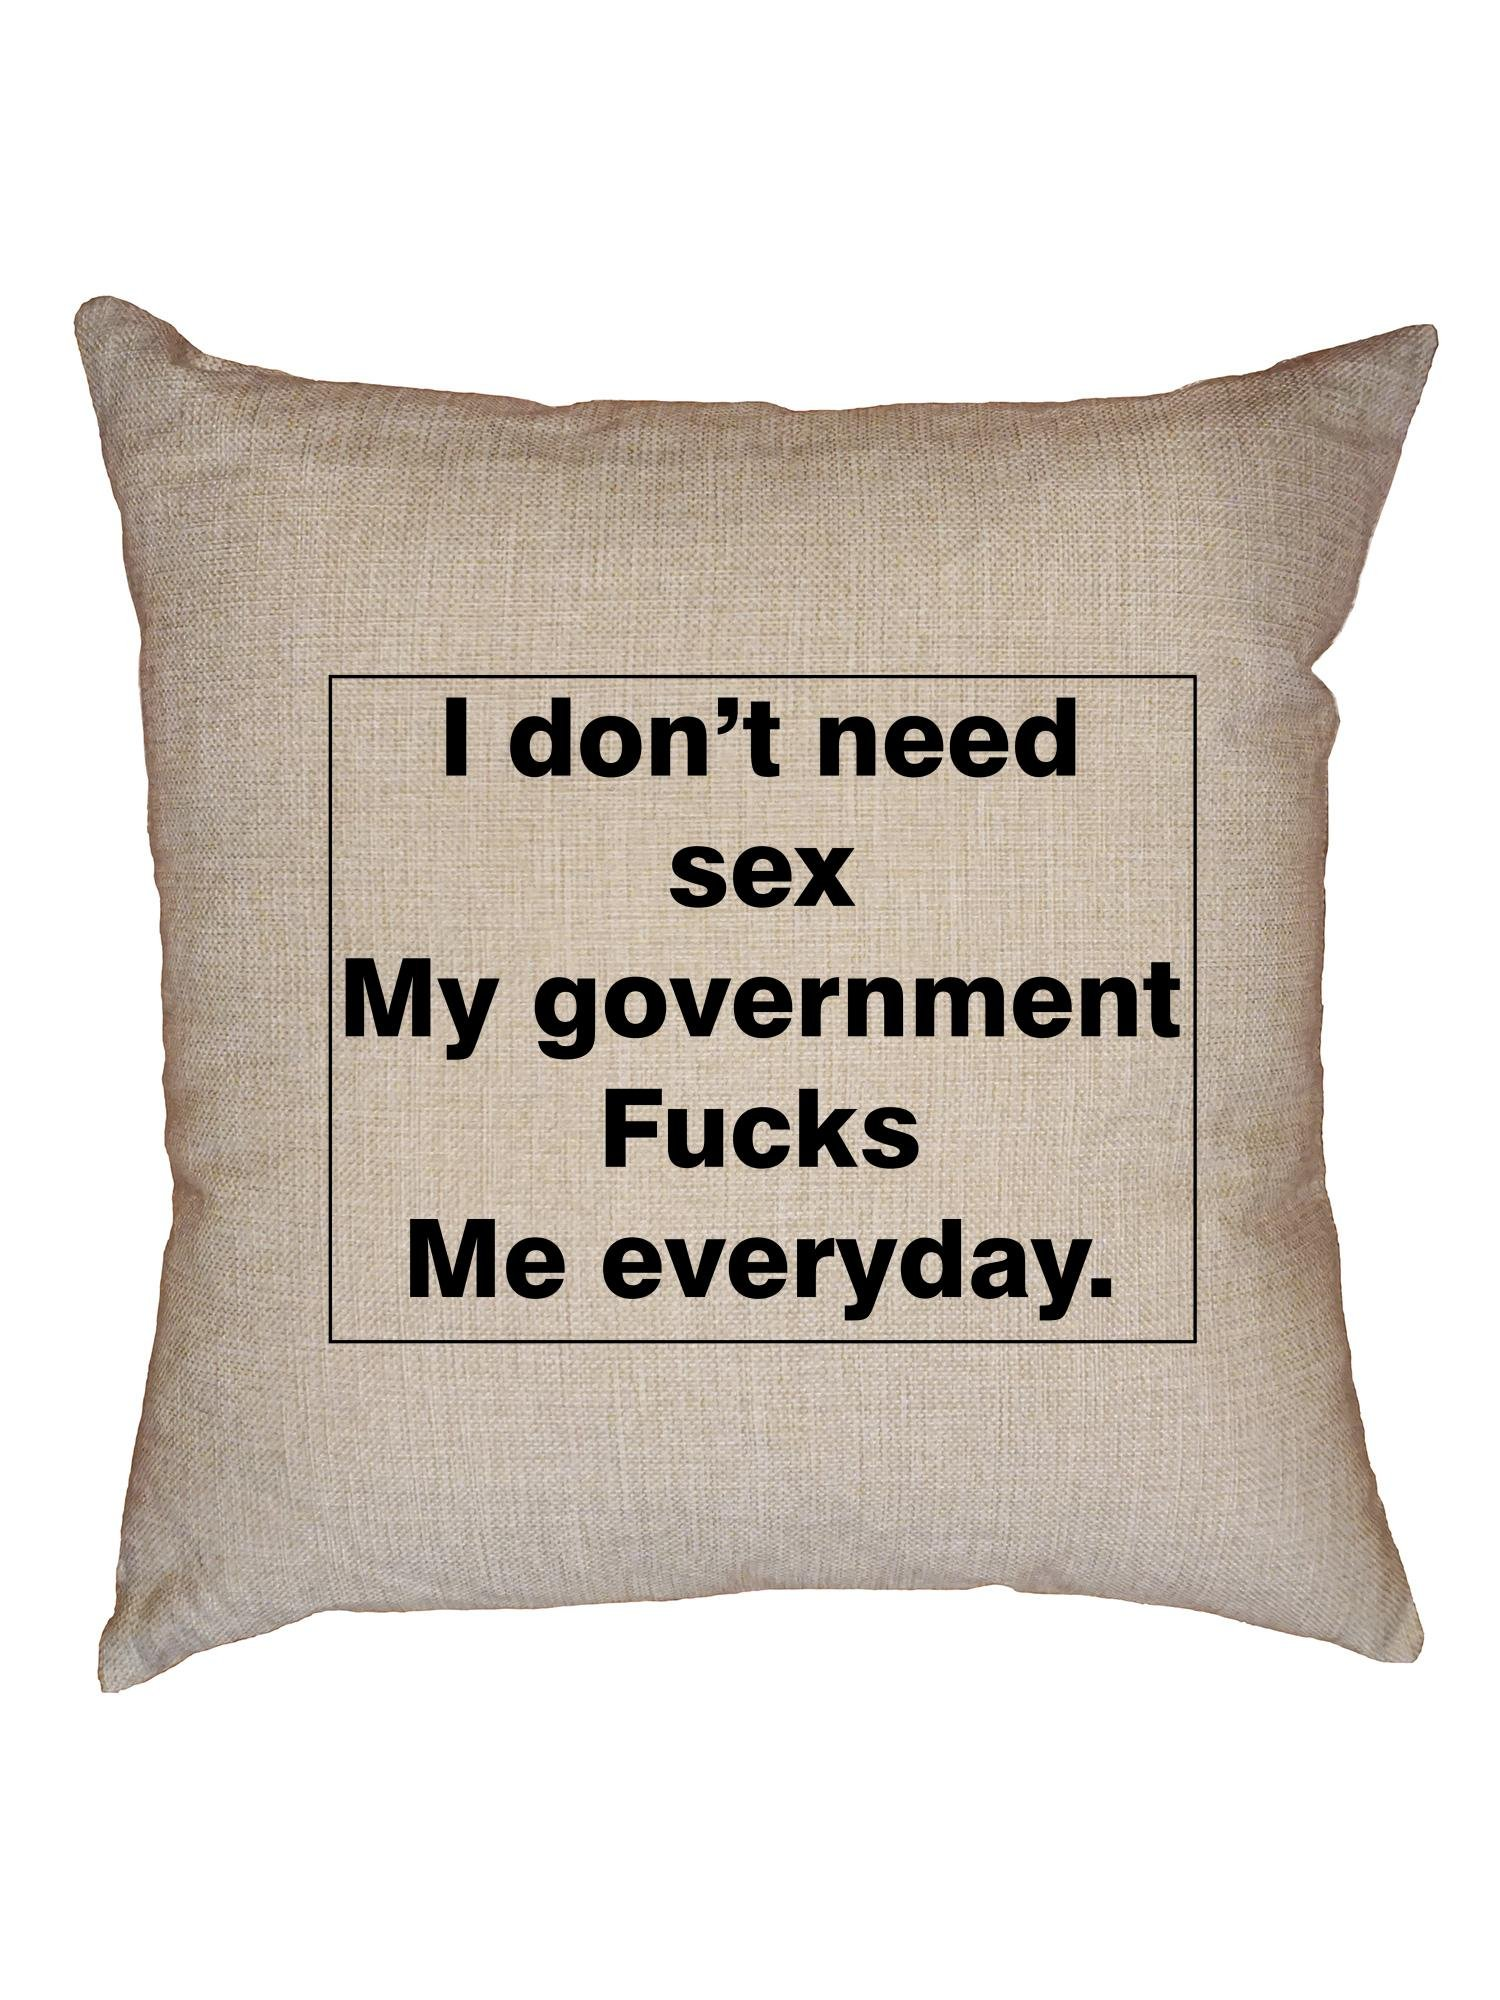 Hollywood Thread I Don't Need Sex, My Government Fcks Me Everyday Decorative Linen Throw Cushion Pillow Case with Insert